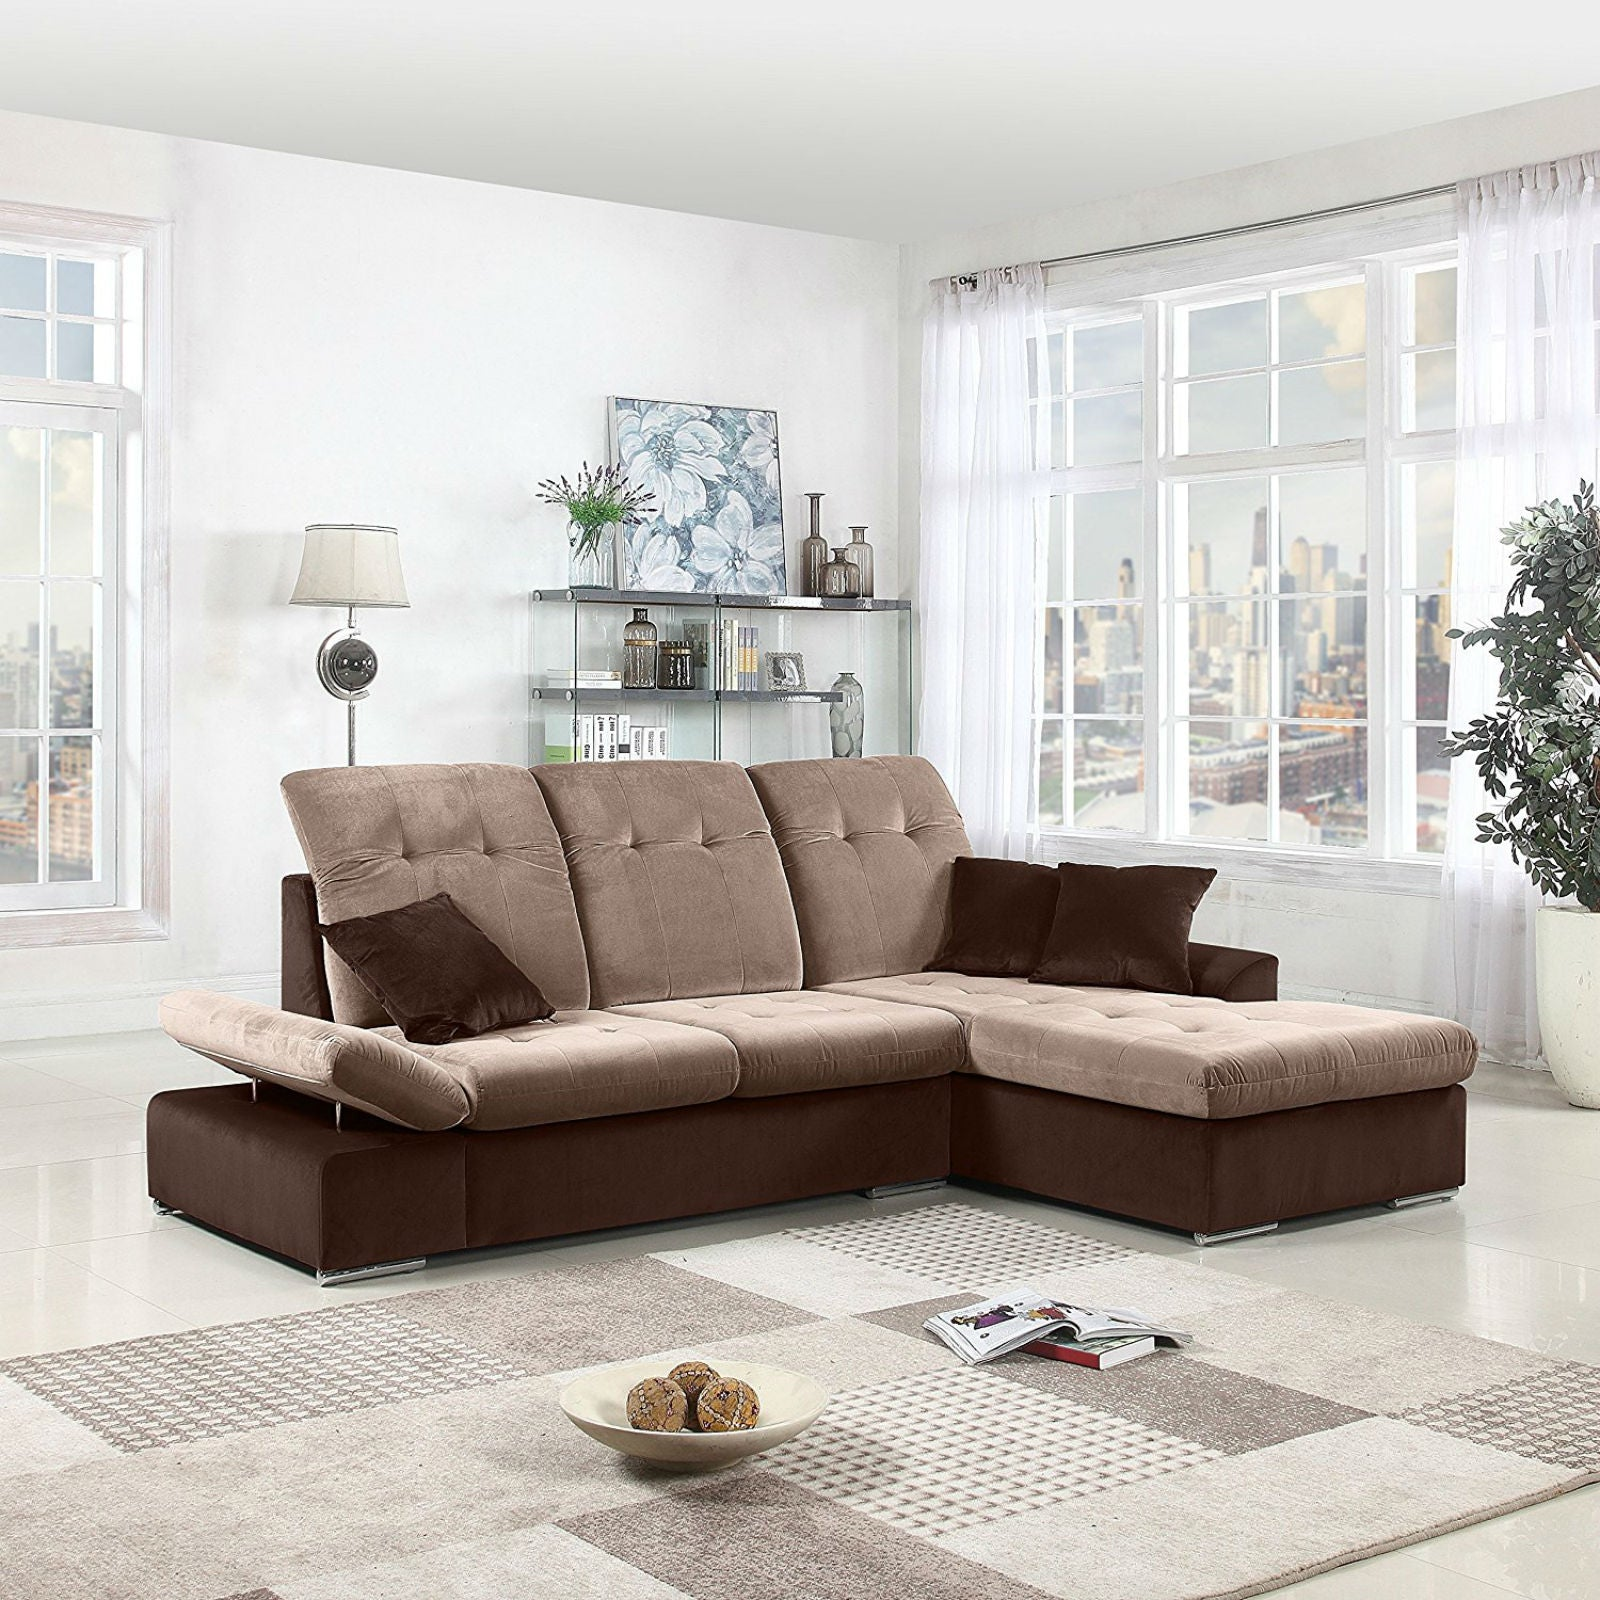 Concorde Microfiber Sectional Sofa with Chaise Sofamaniacom